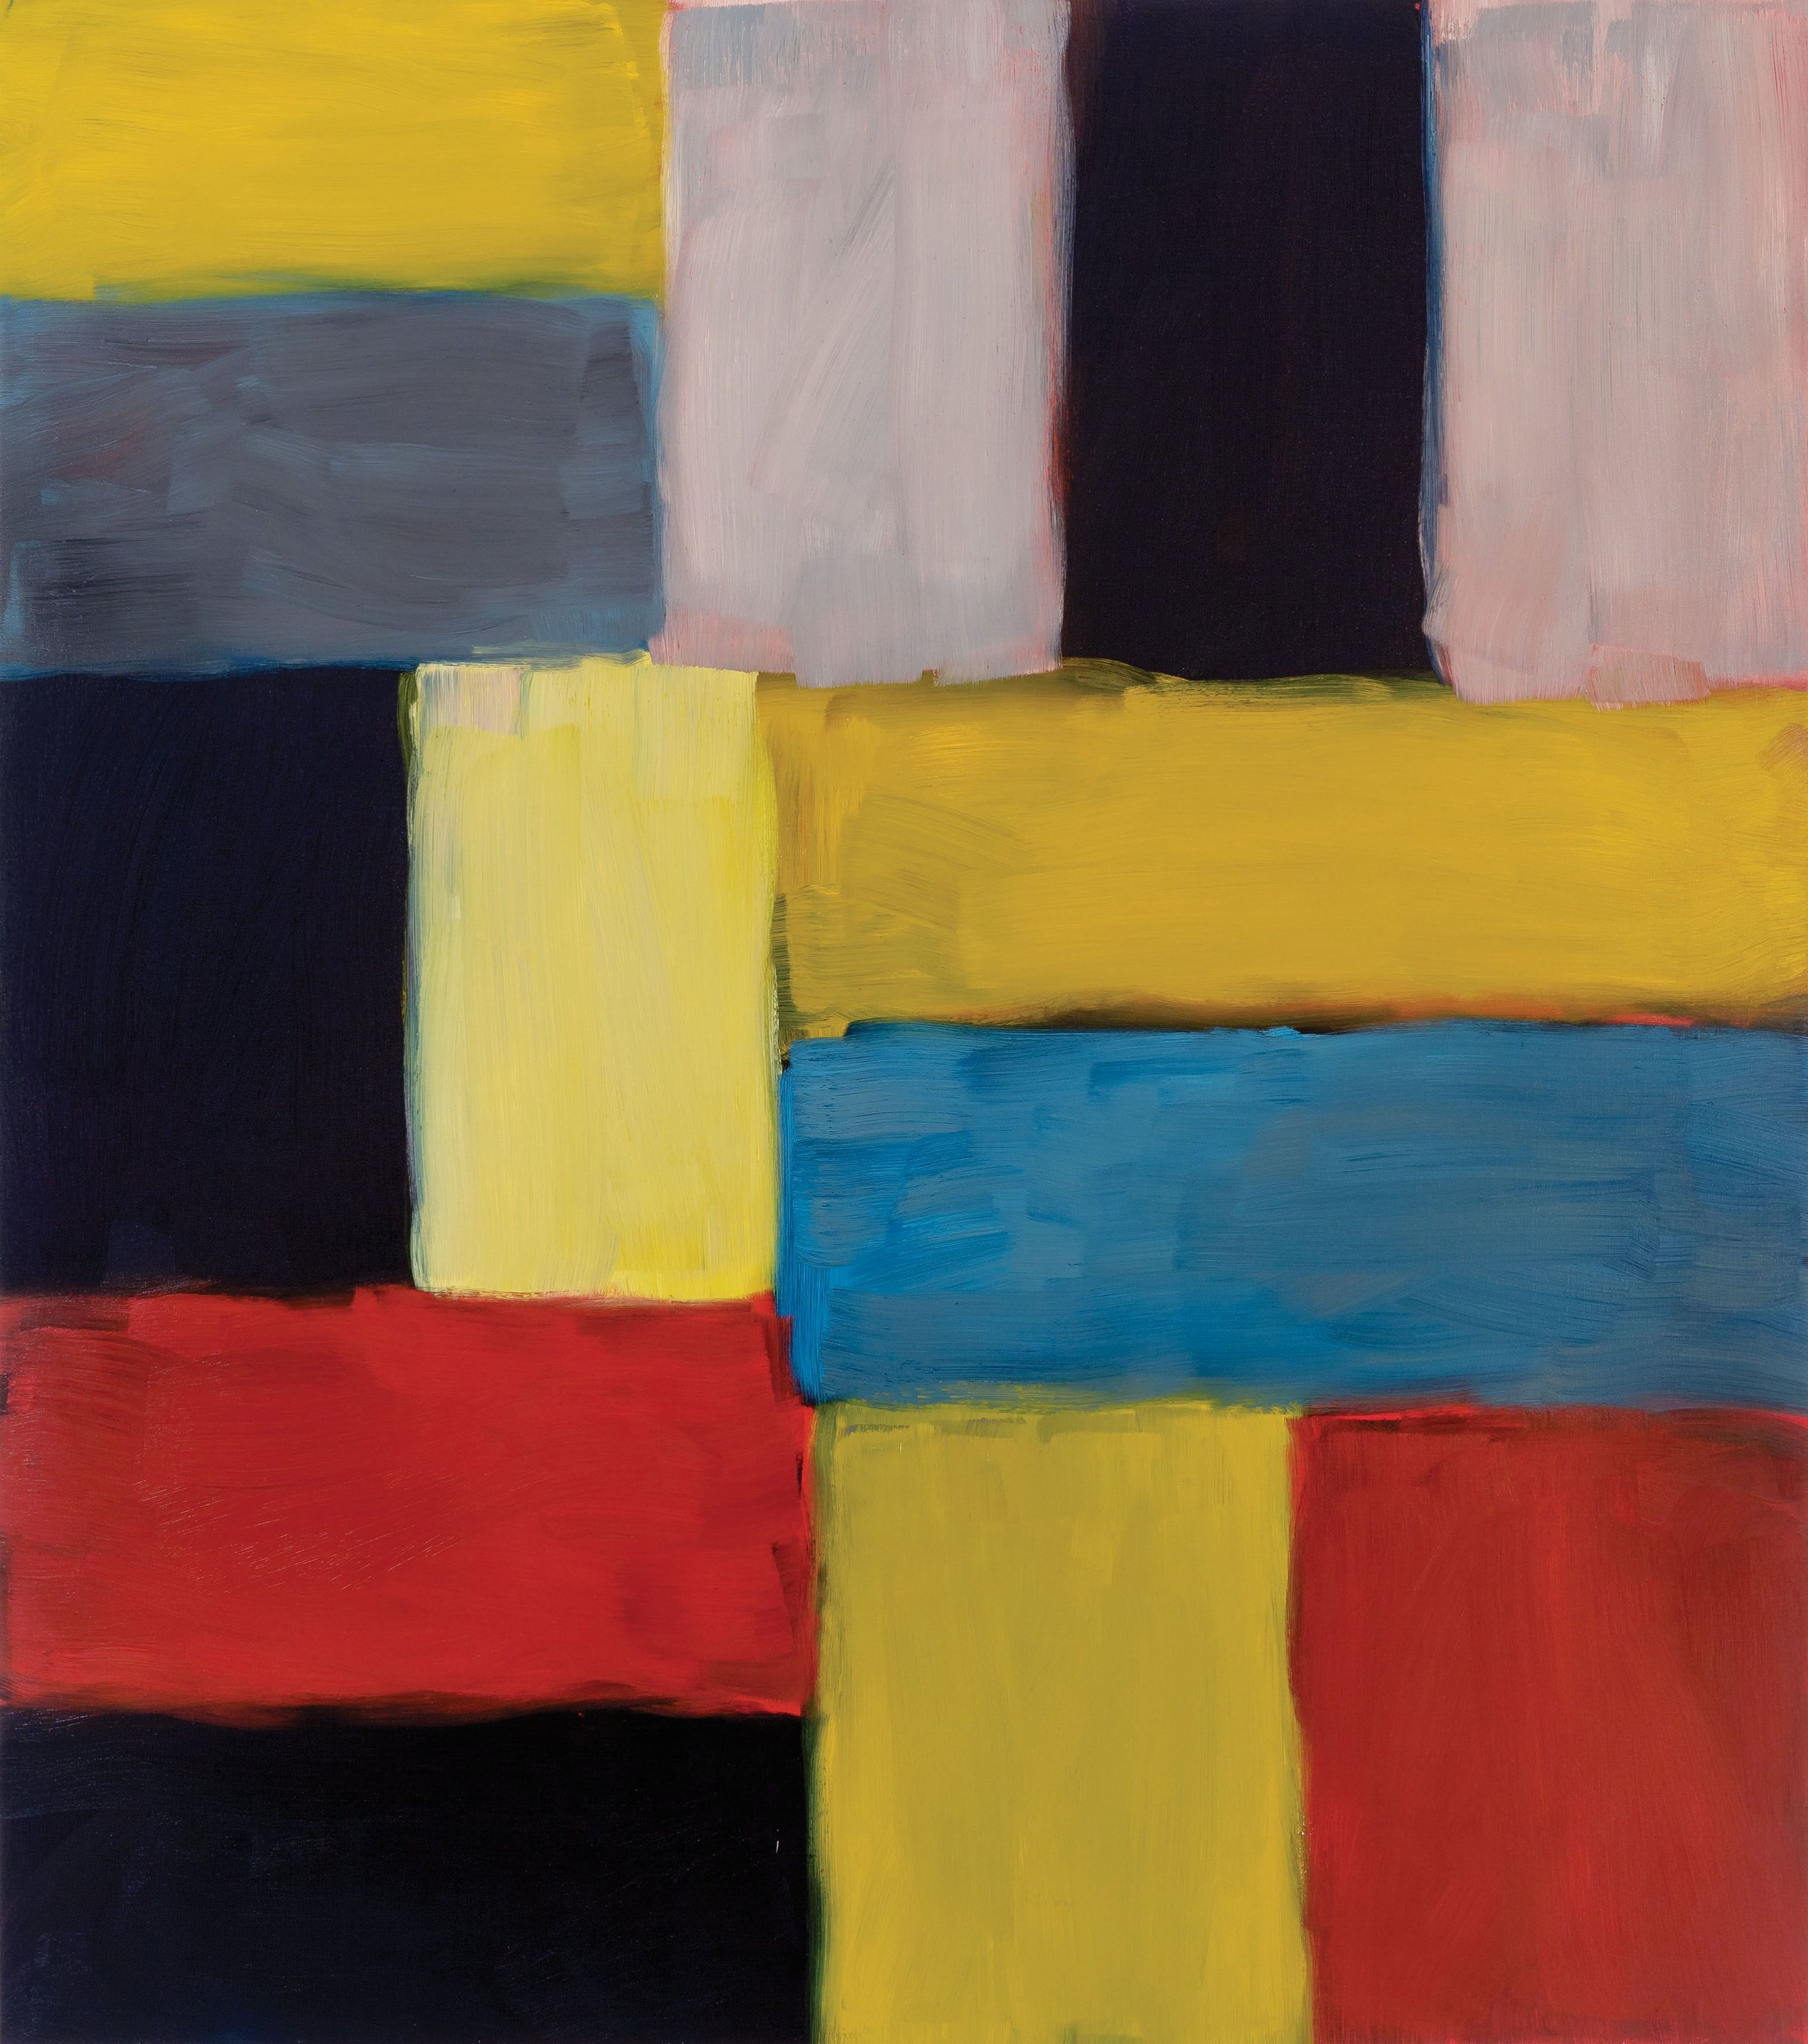 Painting by Sean Scully documented in his Manhattan studio